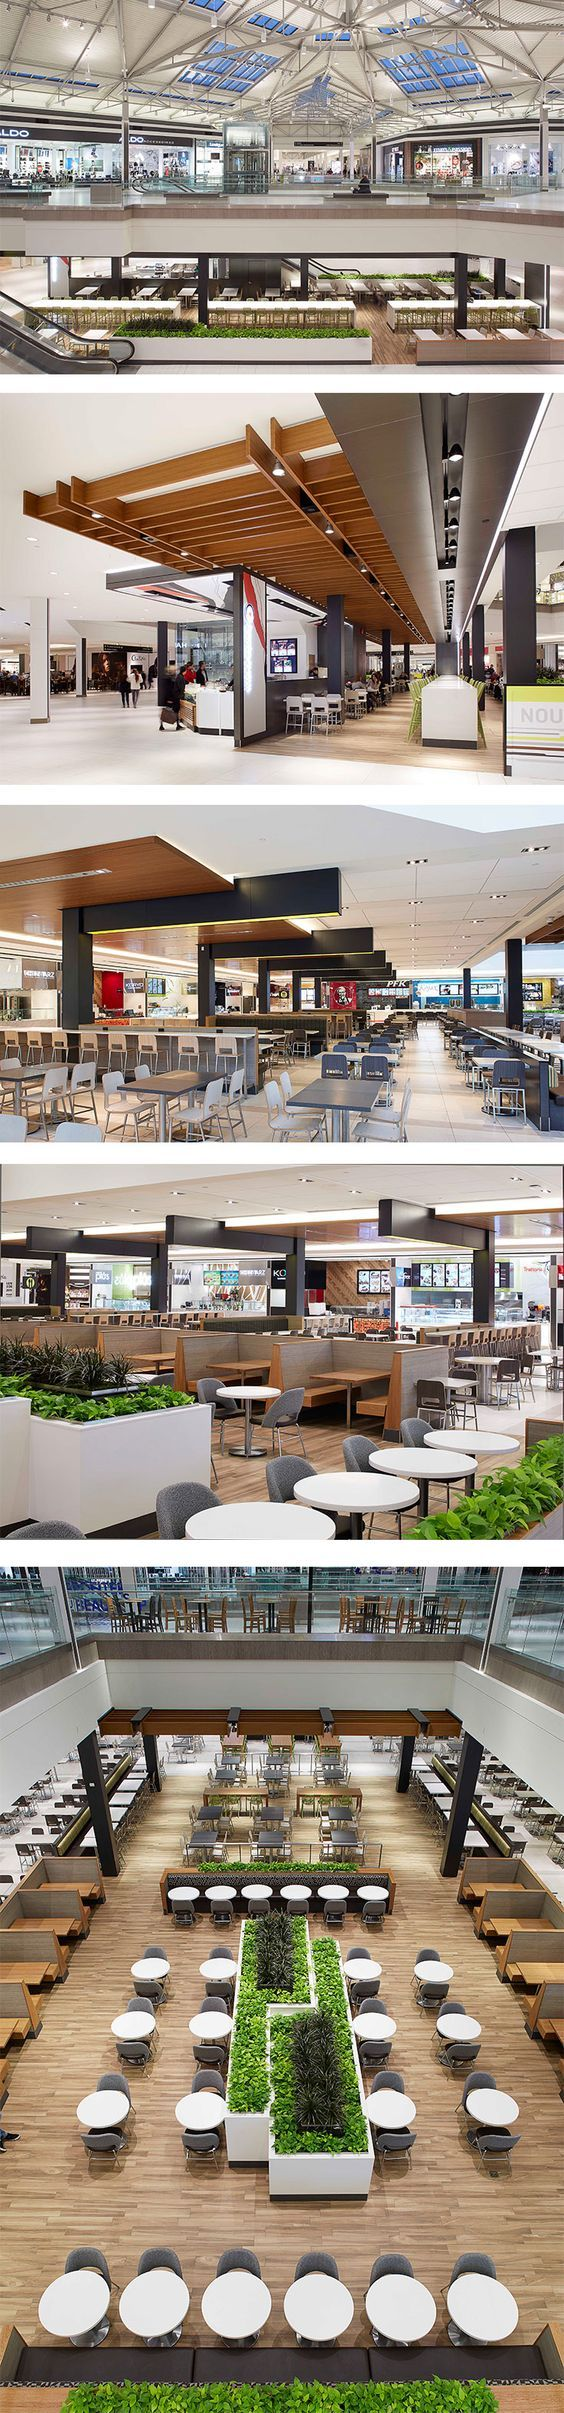 Food Court at Promenades St-Bruno in St-Bruno-de-Montarville, QC - designed by GH+A (in collaboration with Archifin Group):